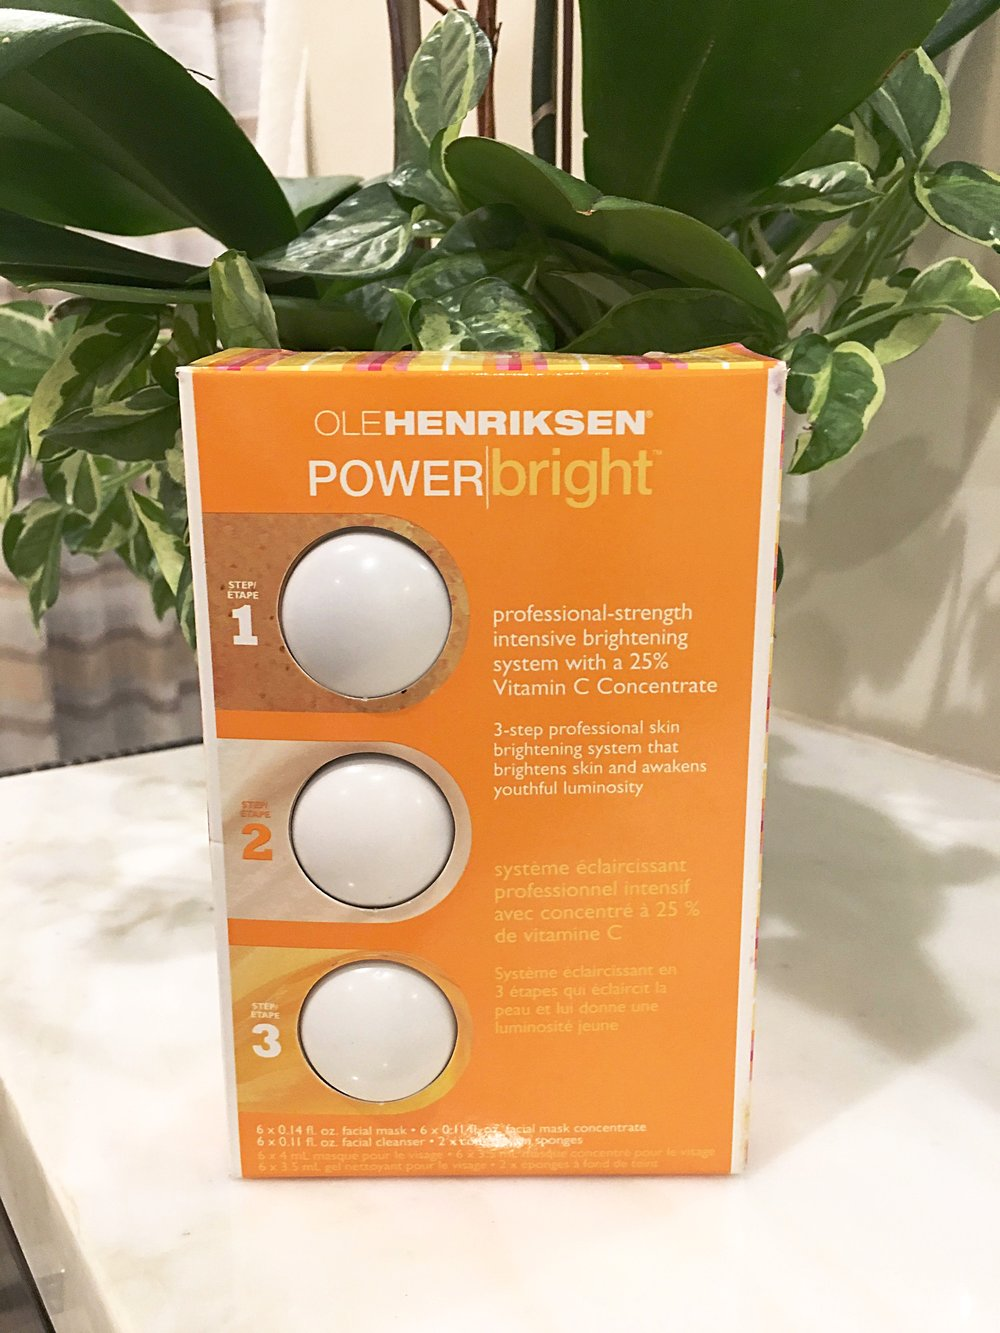 Ole Henriksen Power Bright